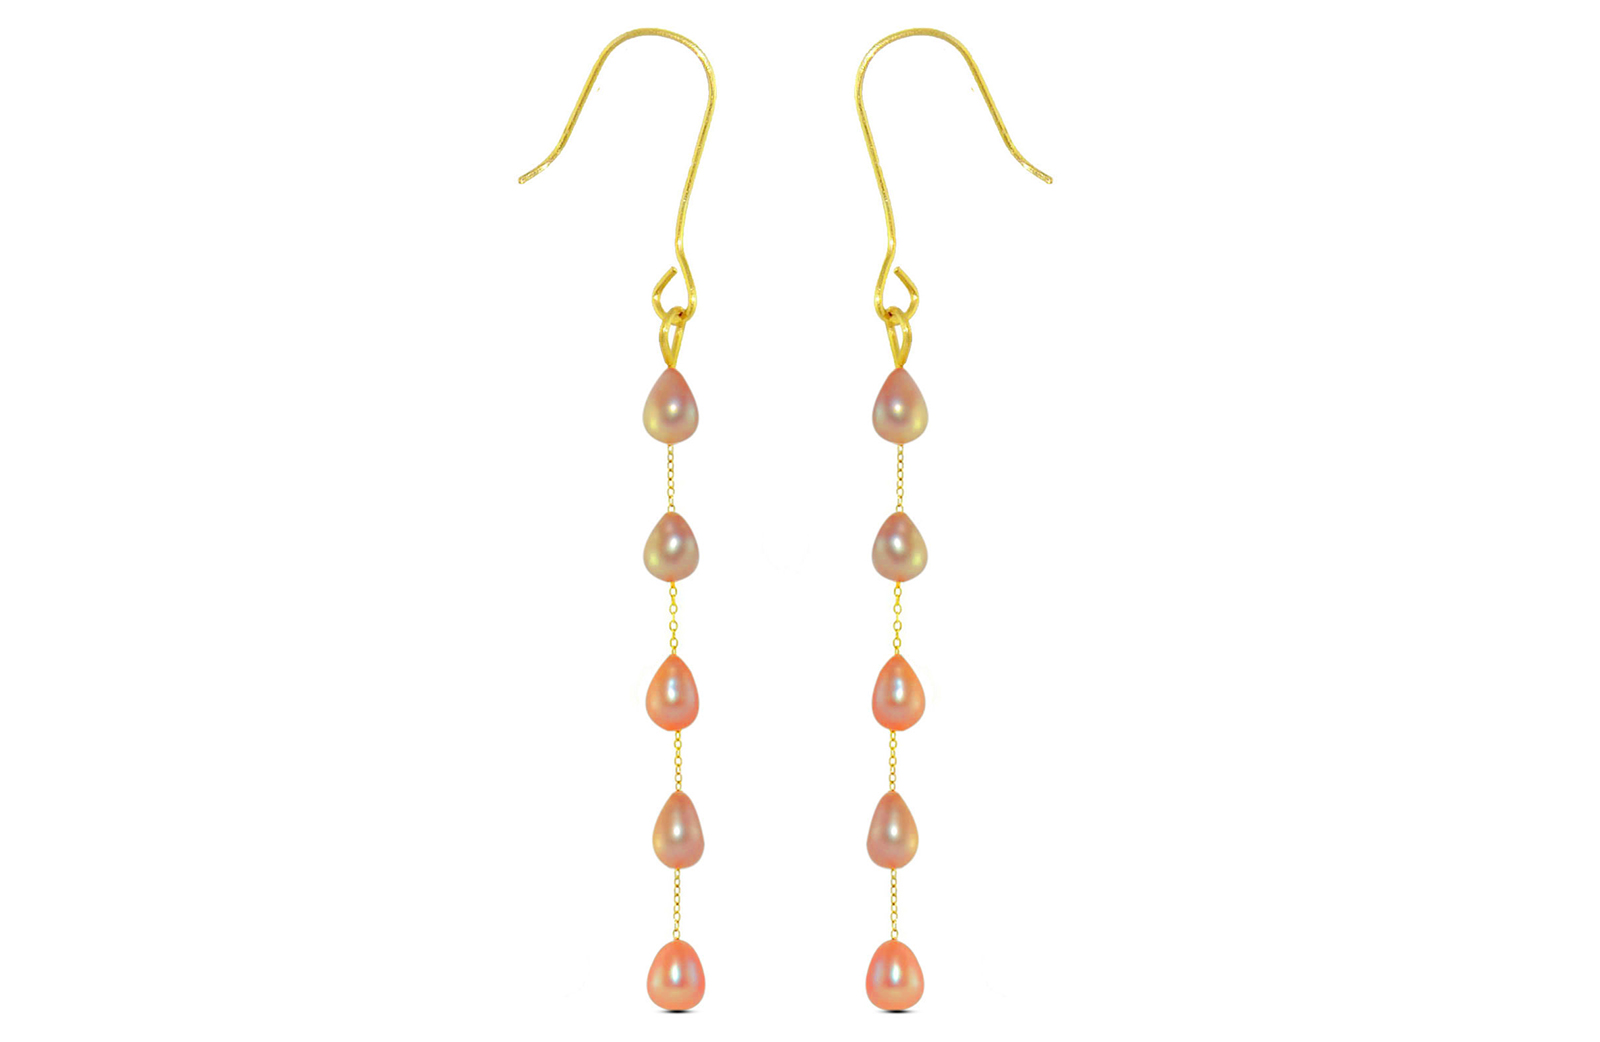 Vera Perla 18K Gold Pink Pearls Opera Drop Earrings